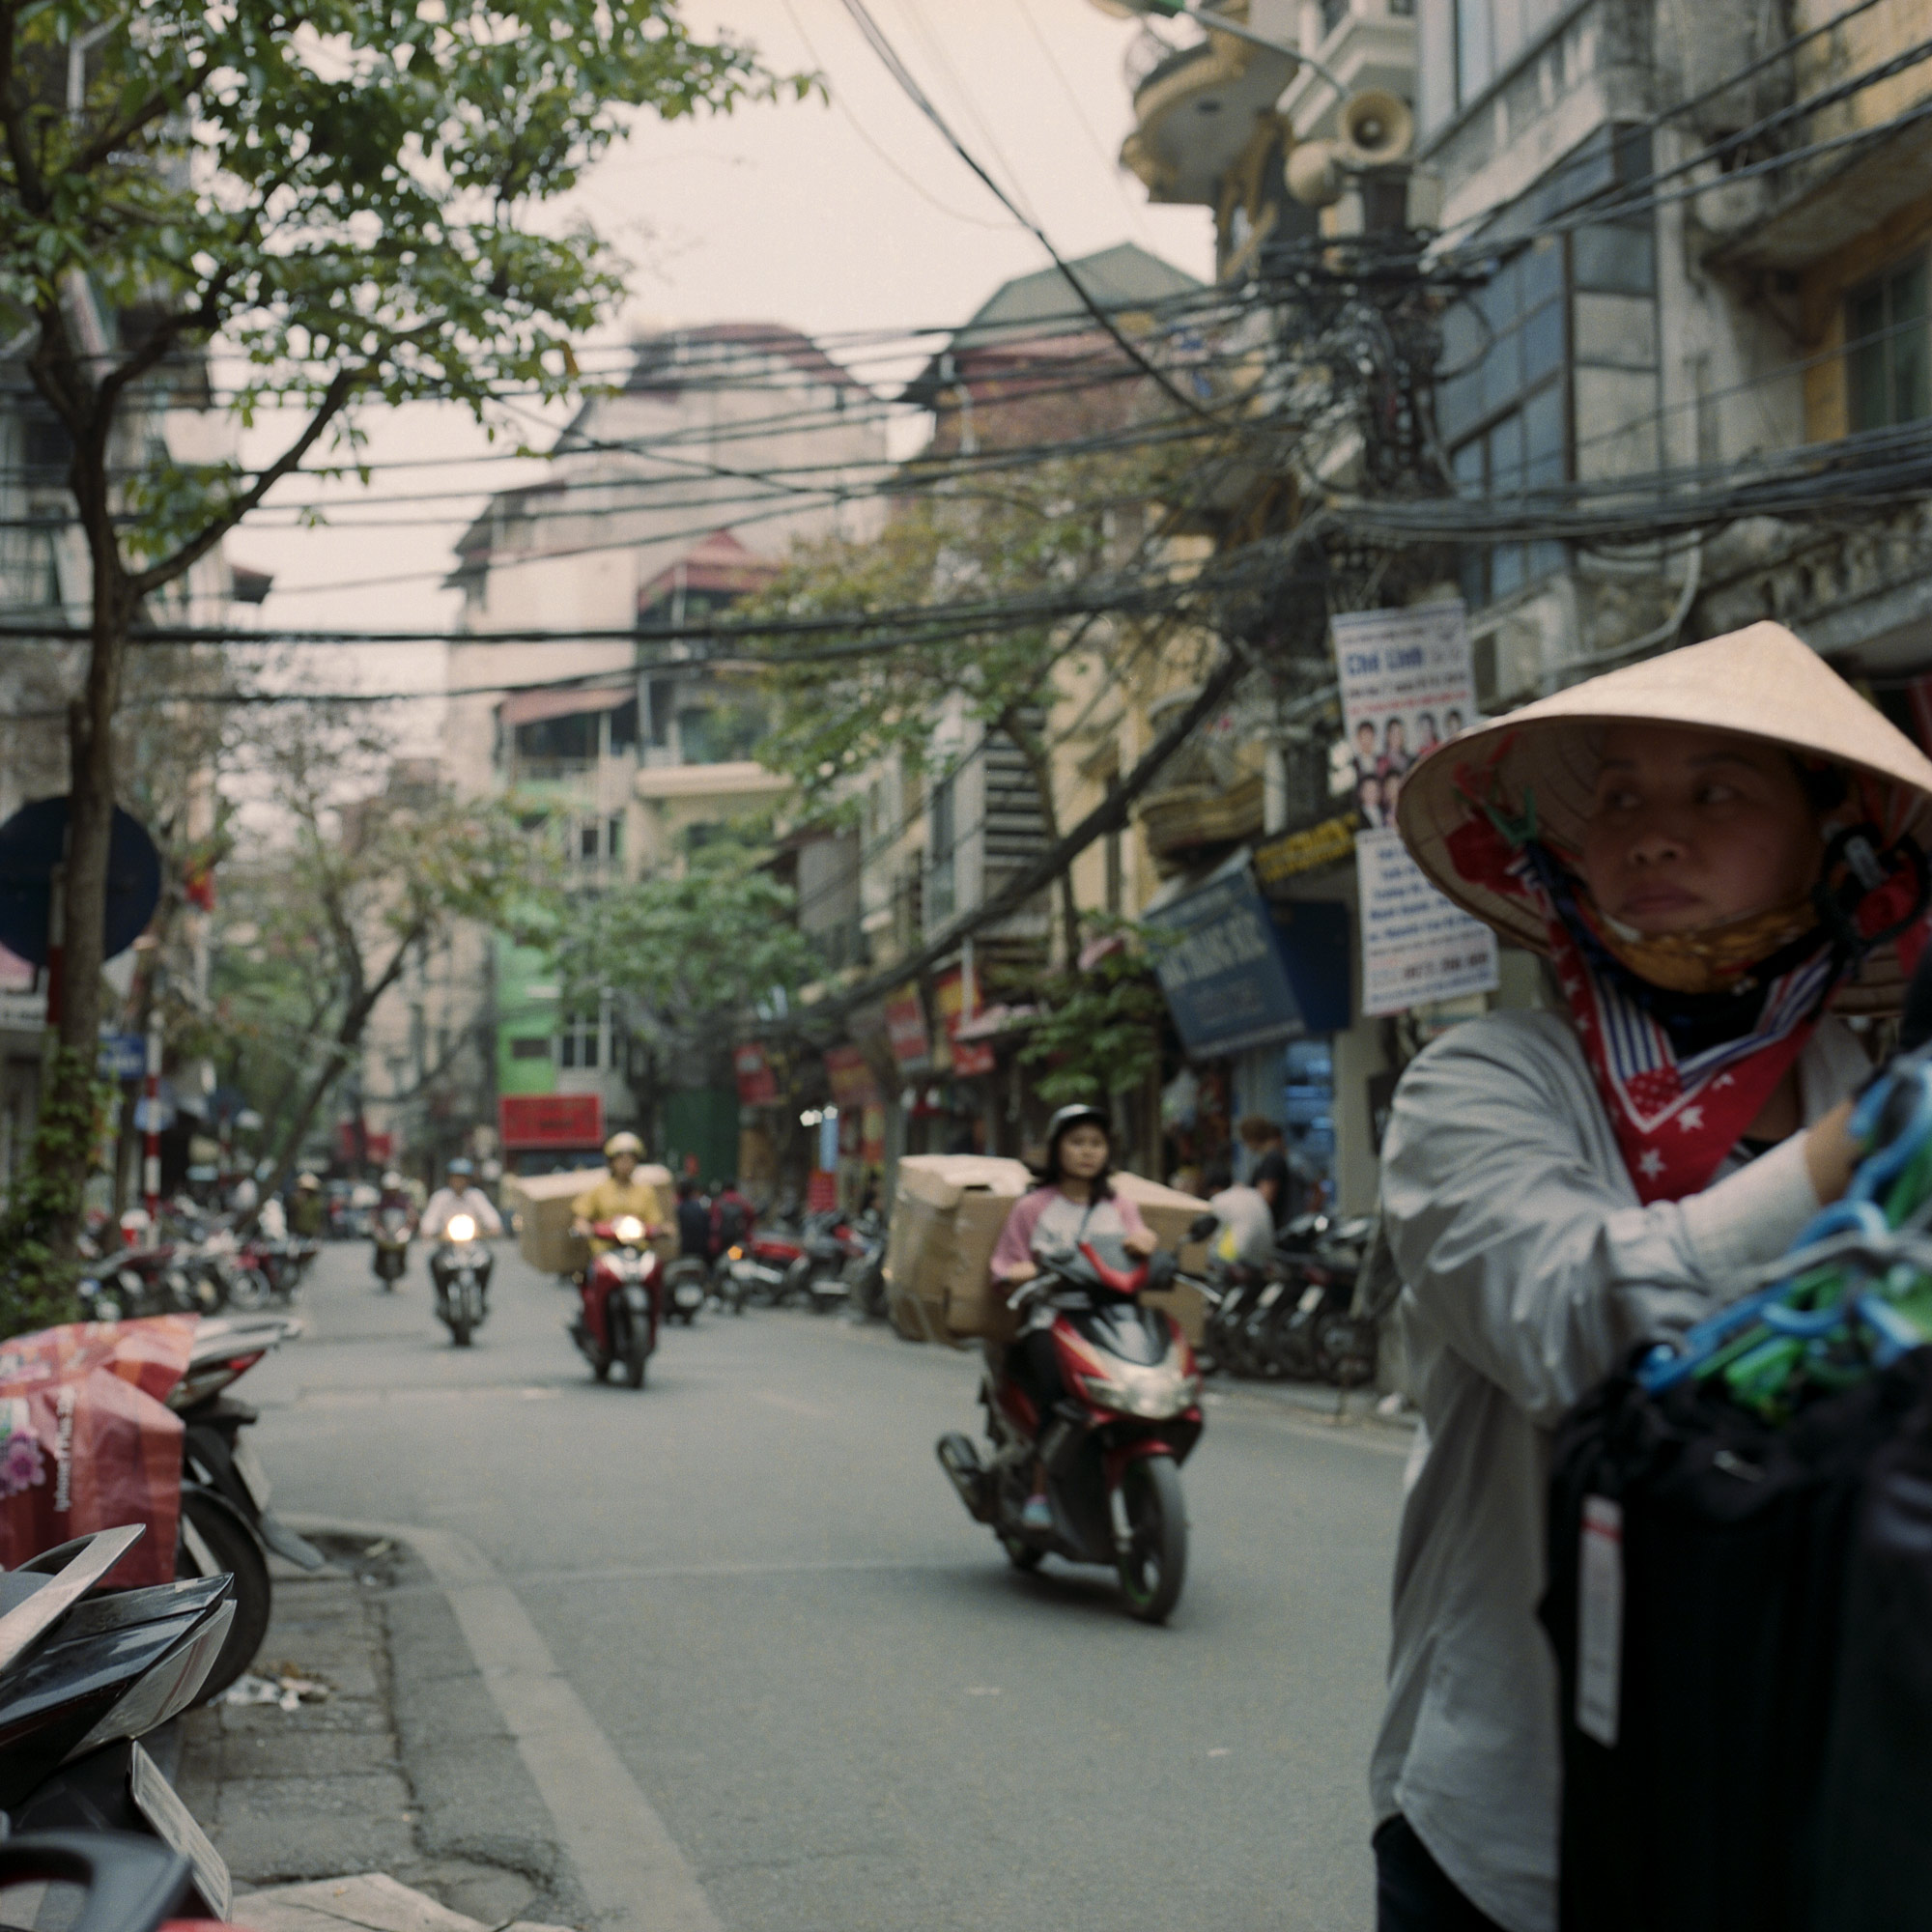 Traffic, motorcyclists, the street culture in Hanoi, Vietnam. Eastern Travels, photography By Ioannis Koussertari